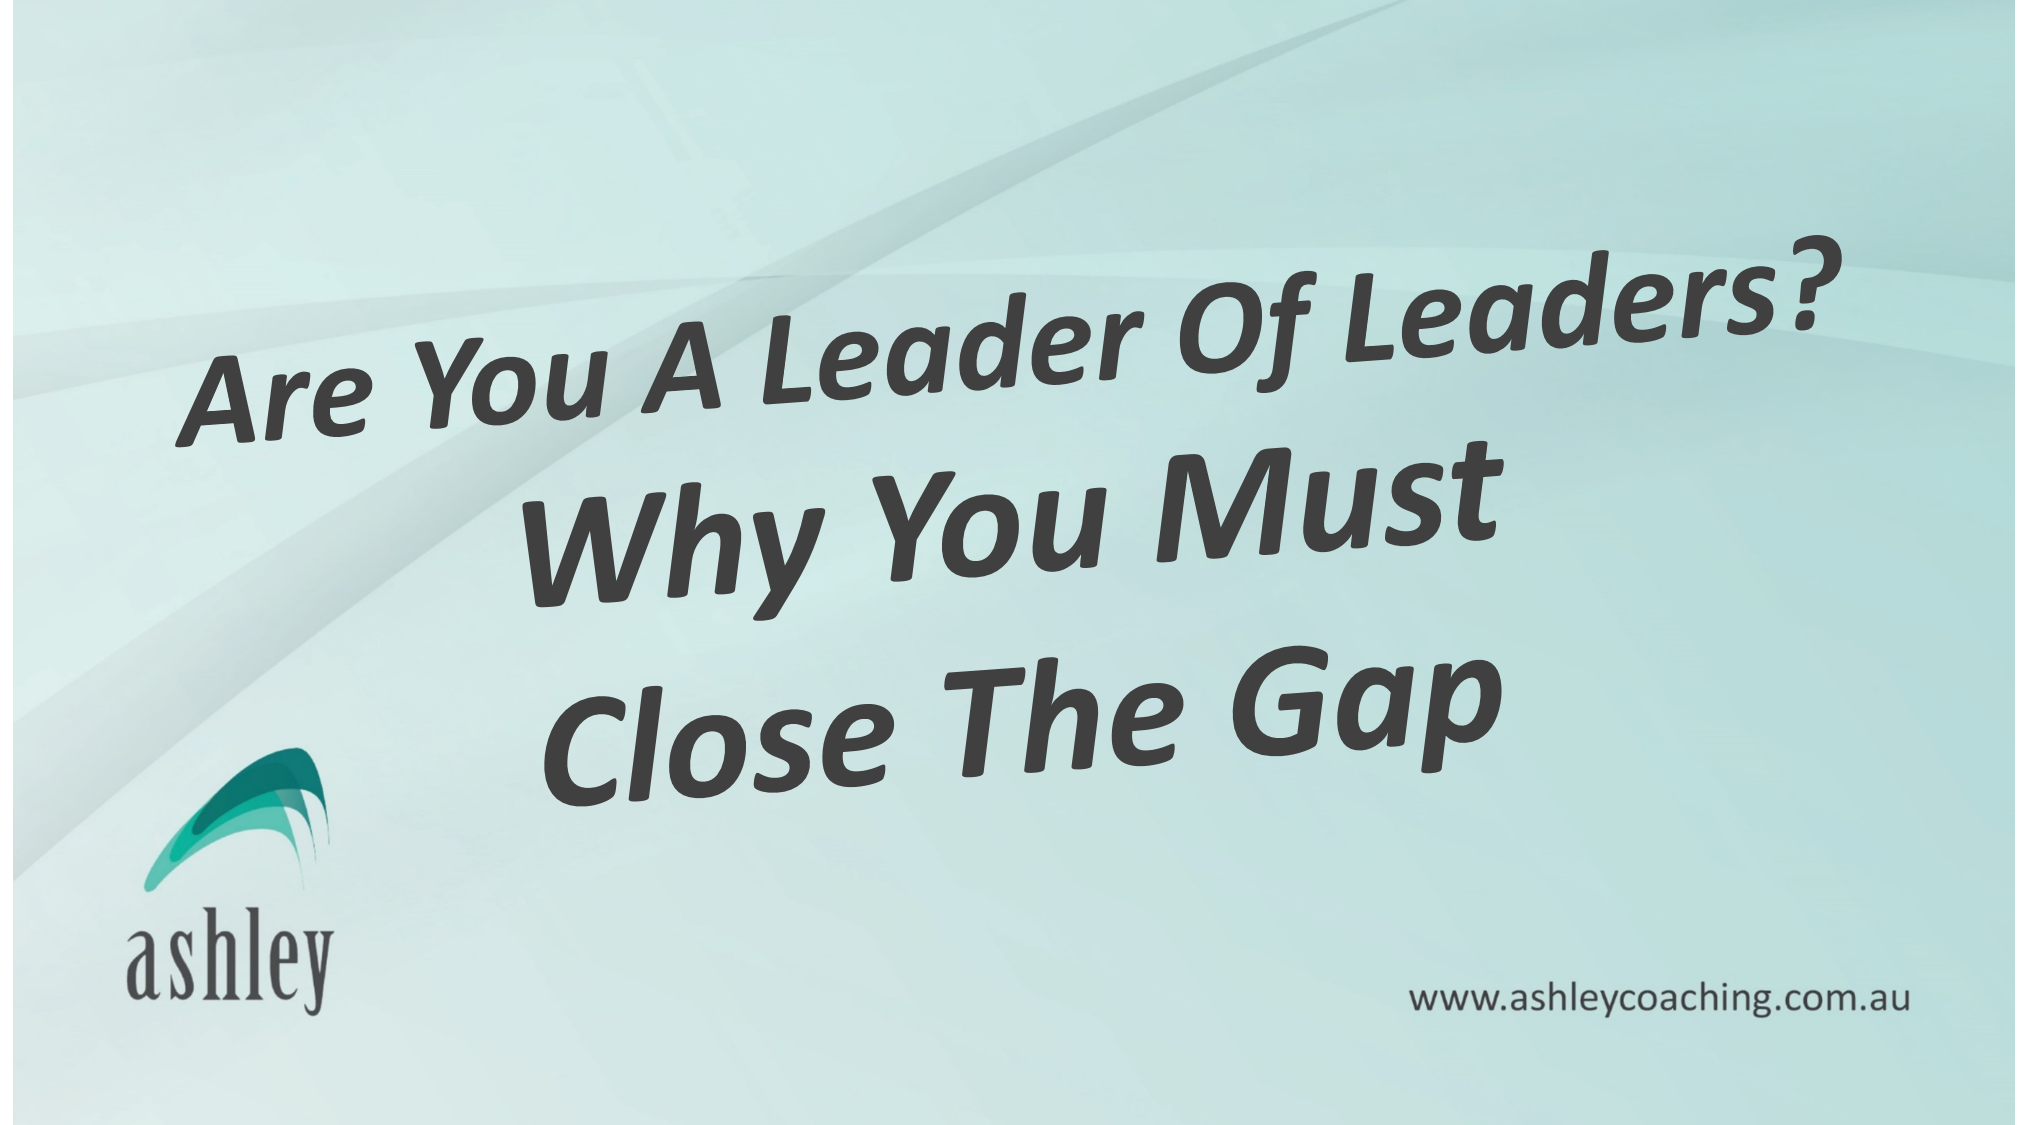 Are You A Leader of Leaders?- Why You Must Close The Gap